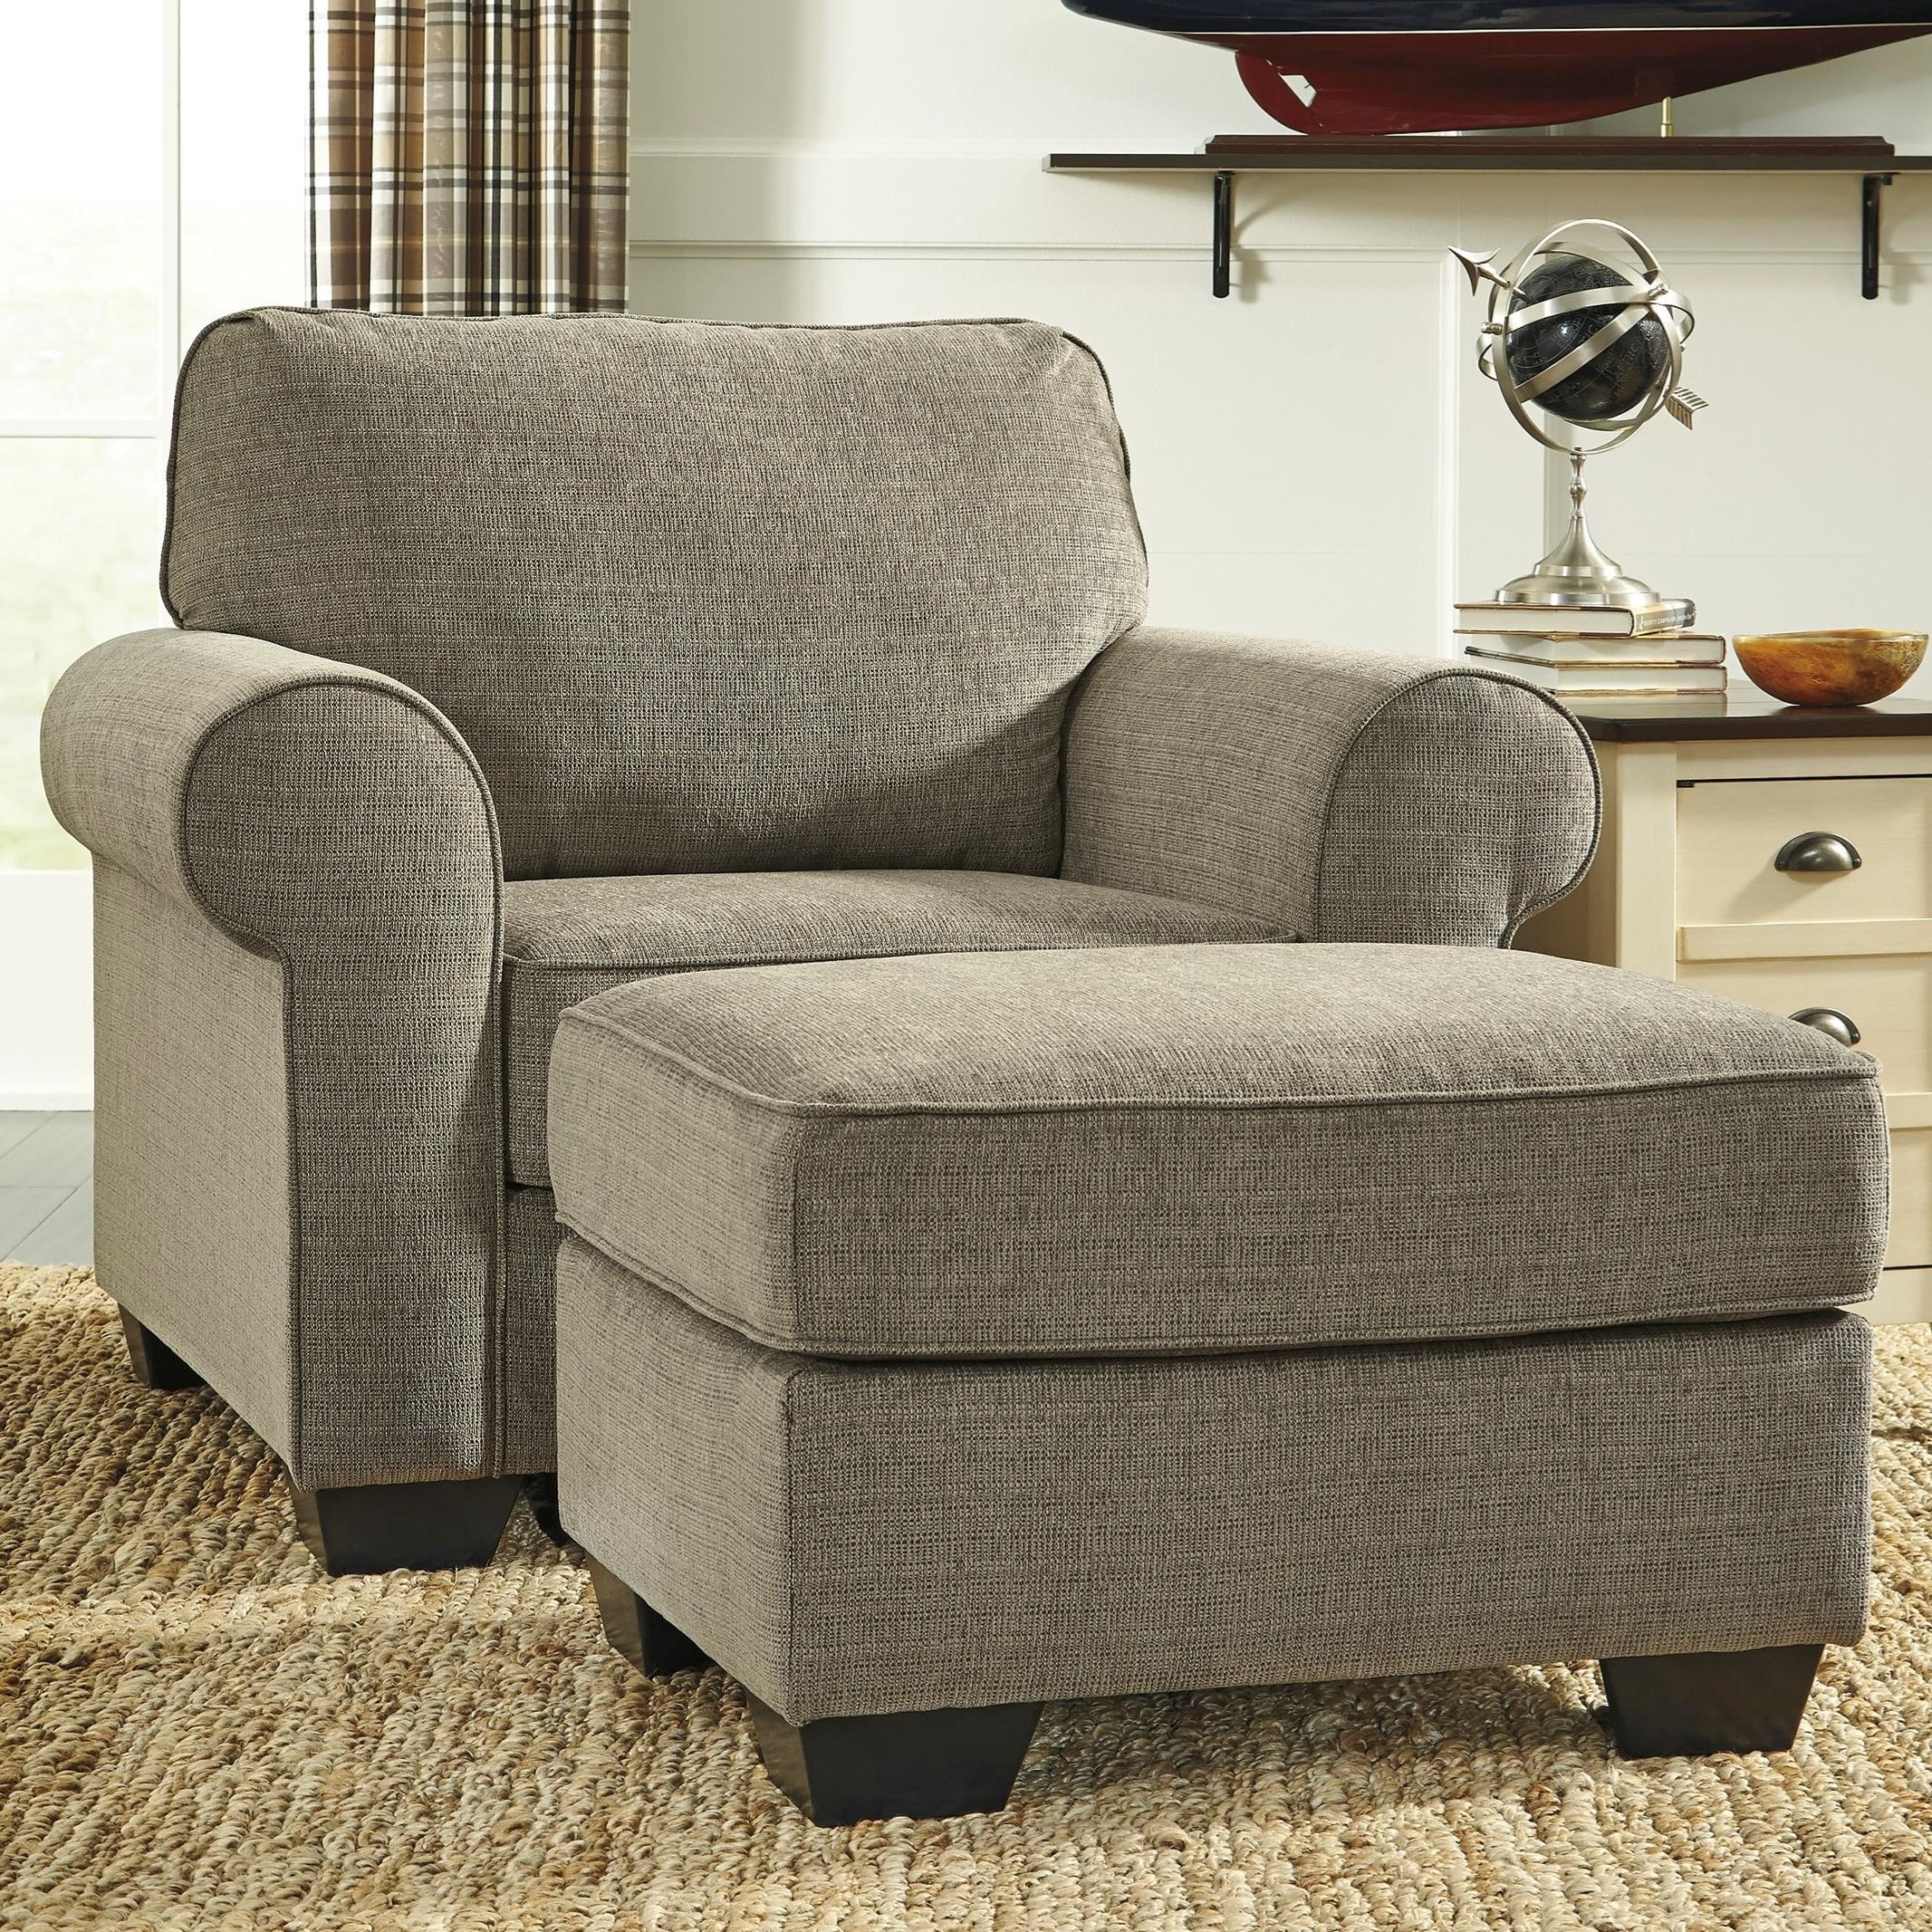 Signature Design by Ashley Baveria Chair & Ottoman - Item Number: 4760020+14